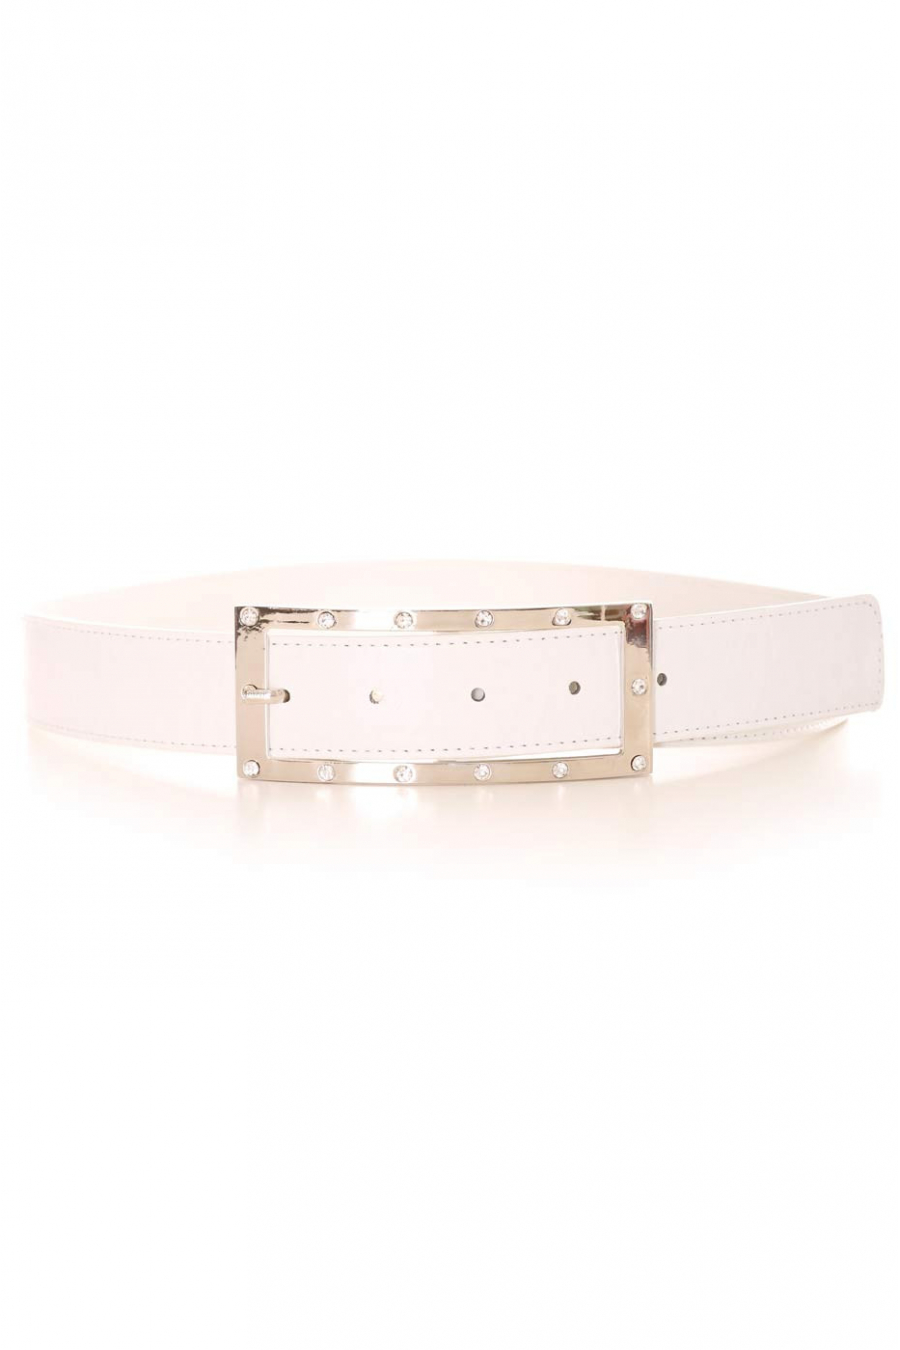 White belt with rectangular silver buckle and rhinestones. Accessory 9008